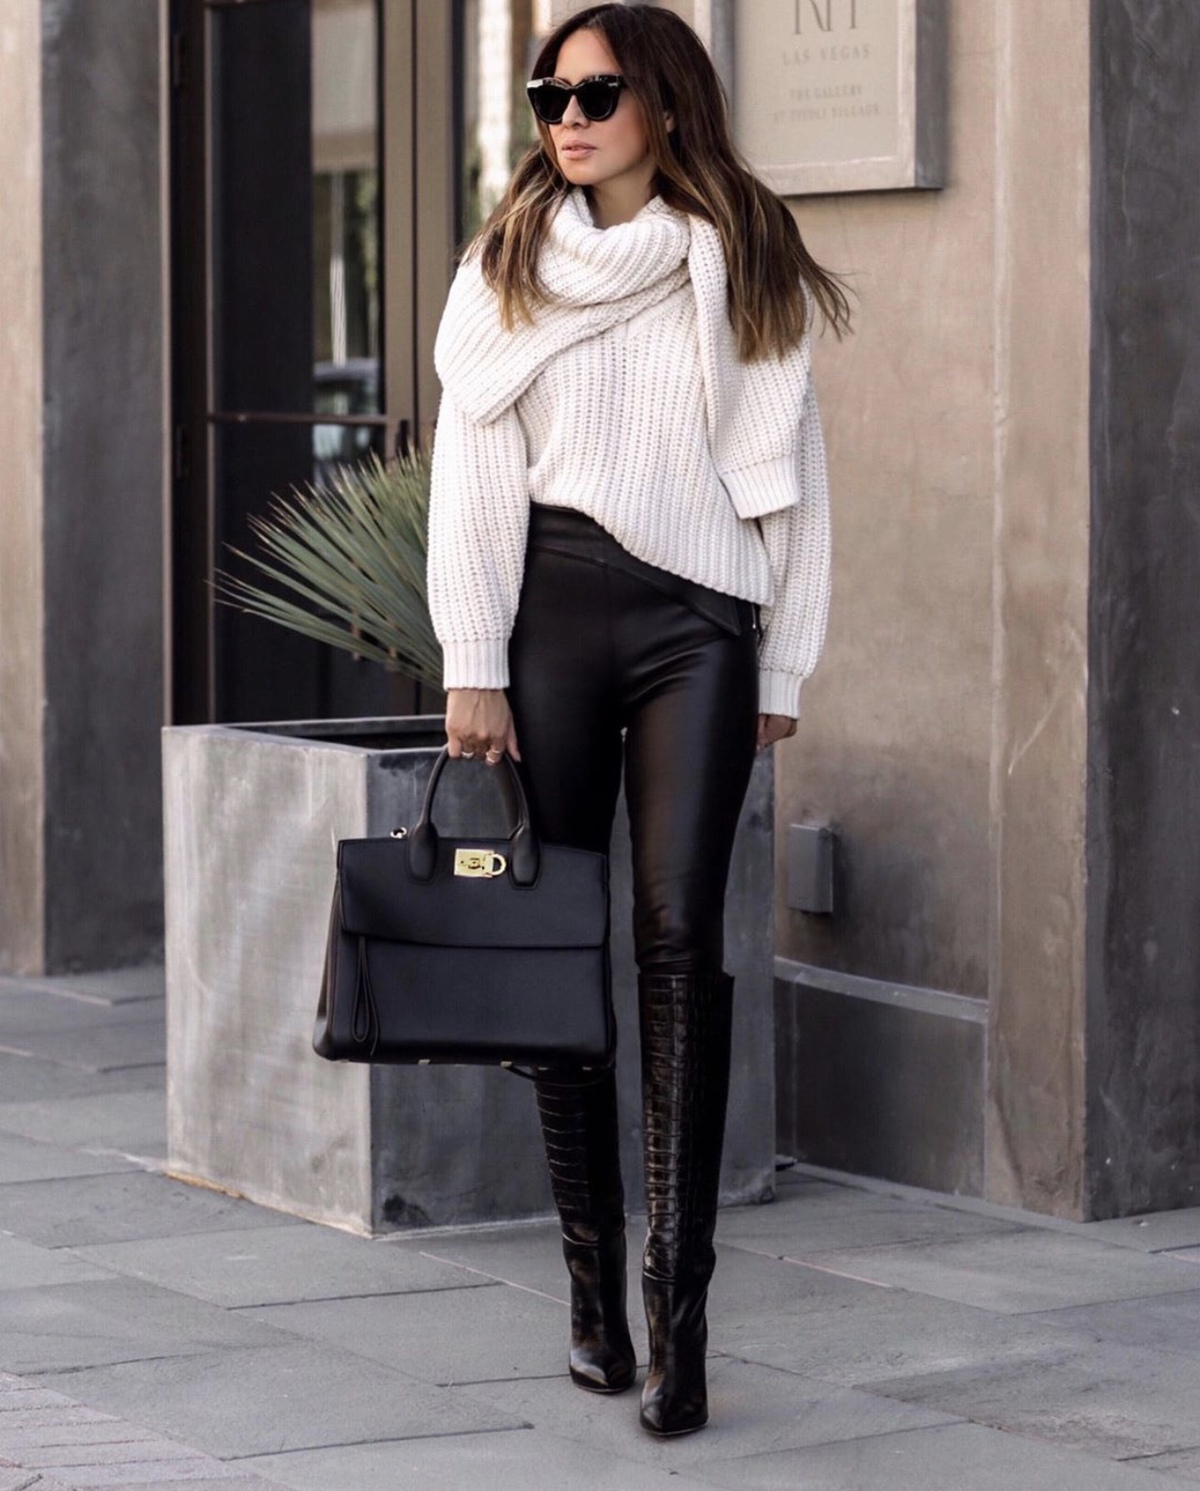 fashion blogger lolario style wears a chunky knit sweater with leather pants a salvatore ferragamo tote and croc-effect boots | lolariostyle.com